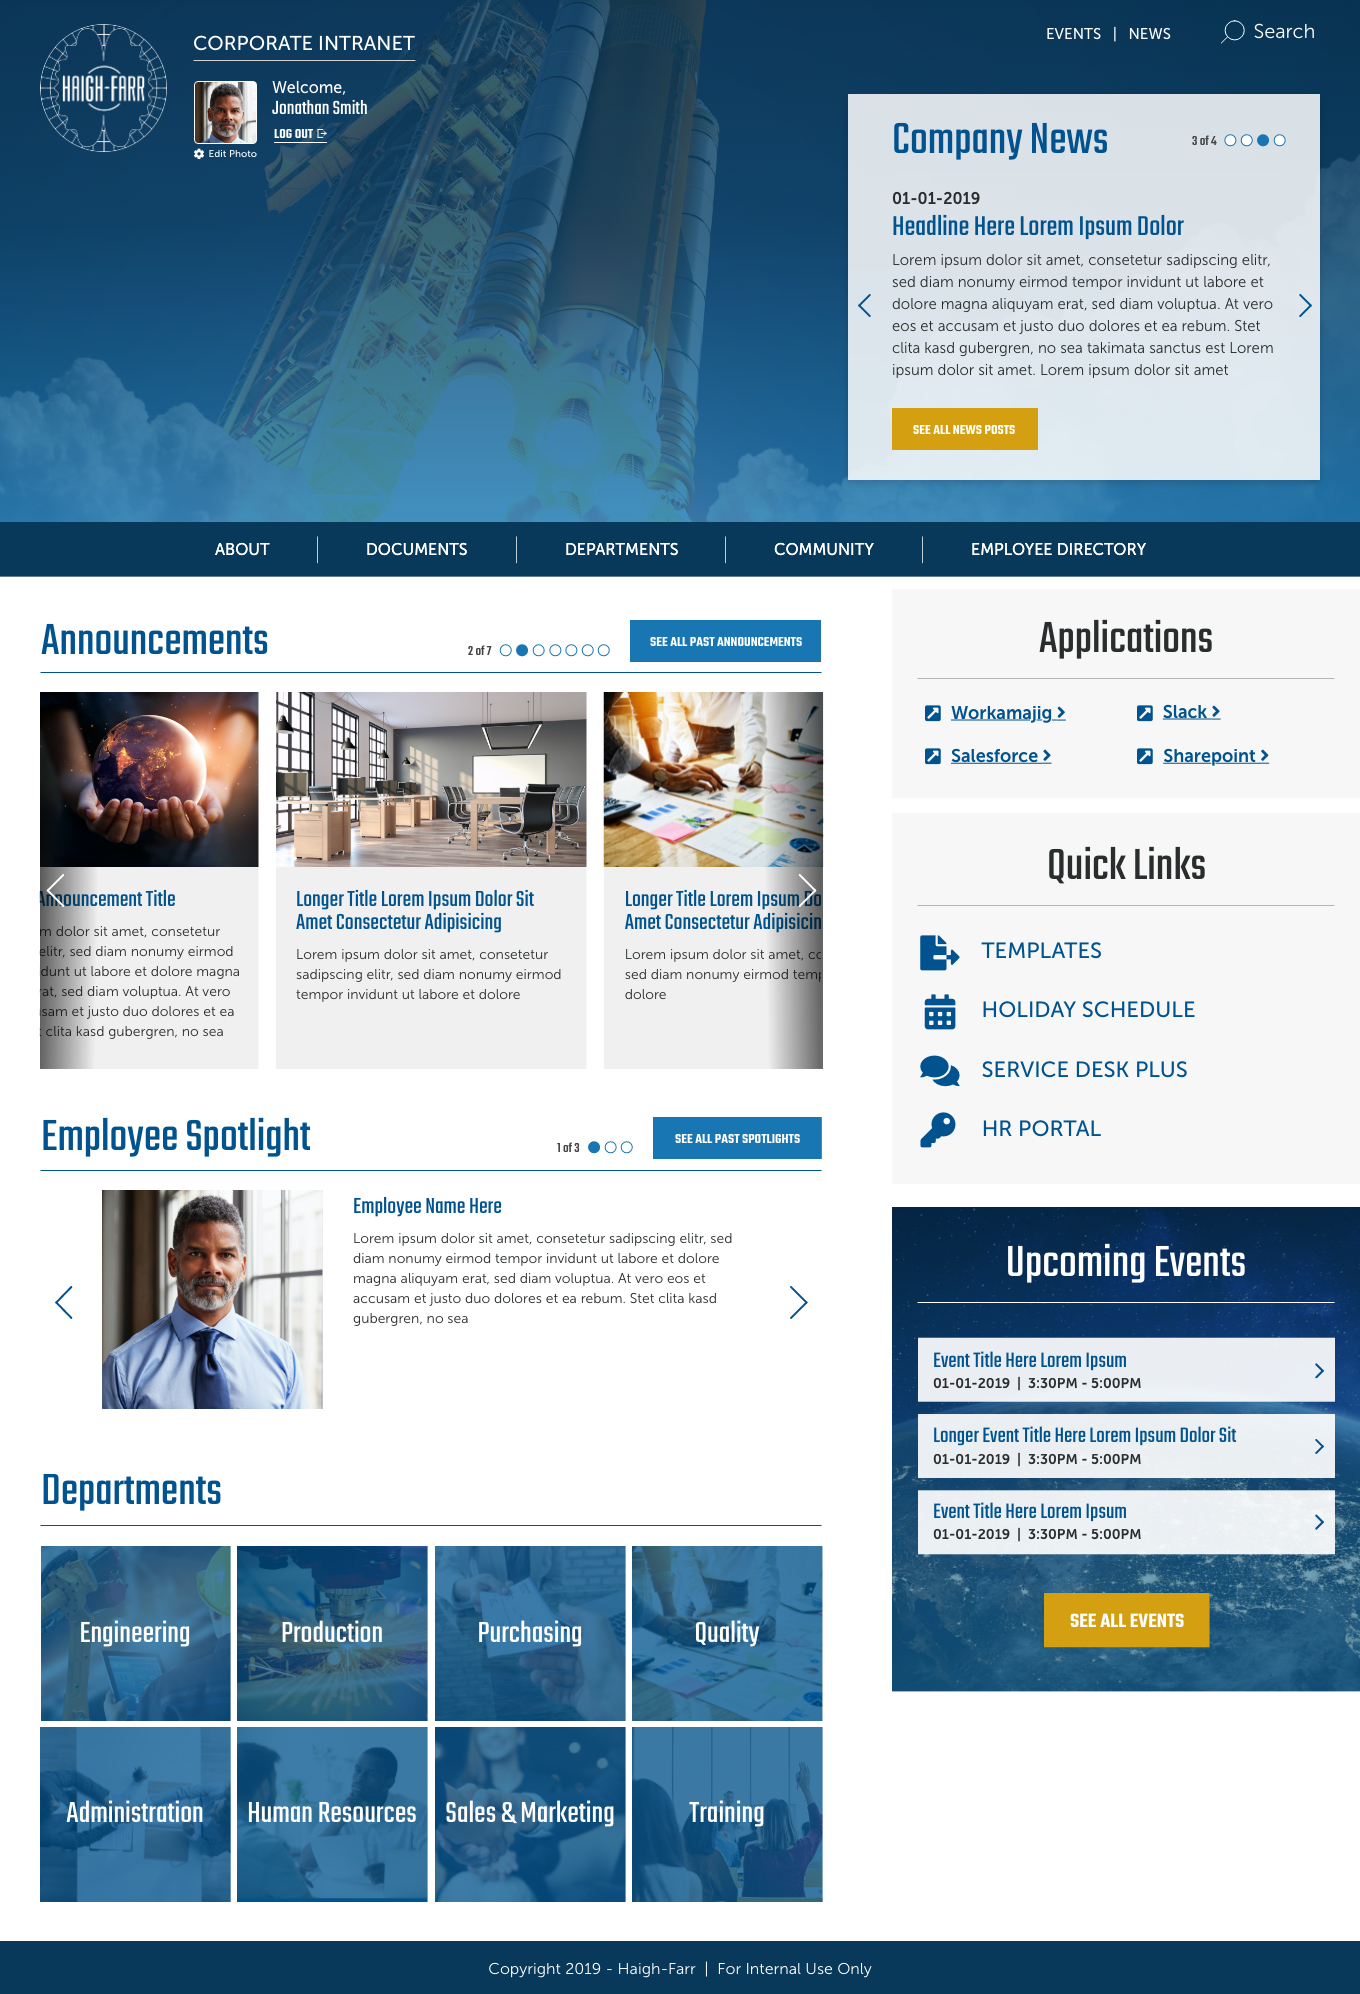 Haigh Farr Intranet Homepage  – proprietary content removed